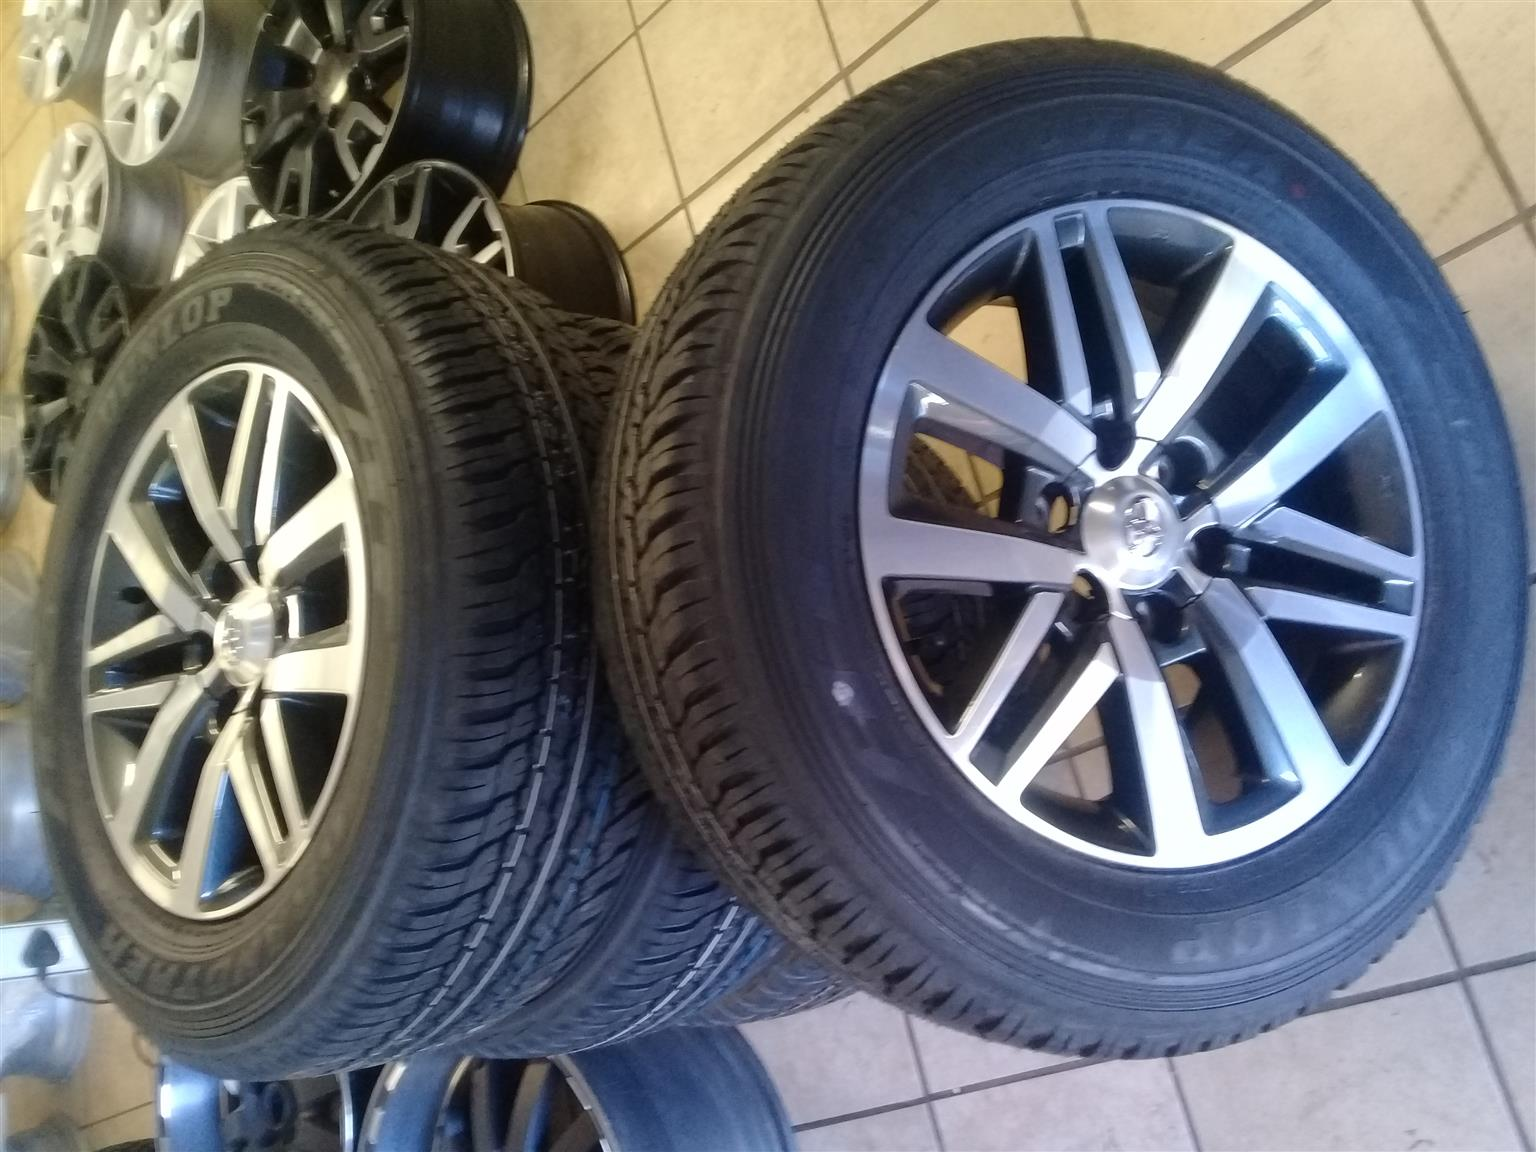 Toyota hilux/fortuner 18'' set of new speck mags 4x   6x139 pcd, with brand new set of tyres 265/60/18 set combo, r13500, we do fitments and balancing , we do trade inns, we do deliveries we open from